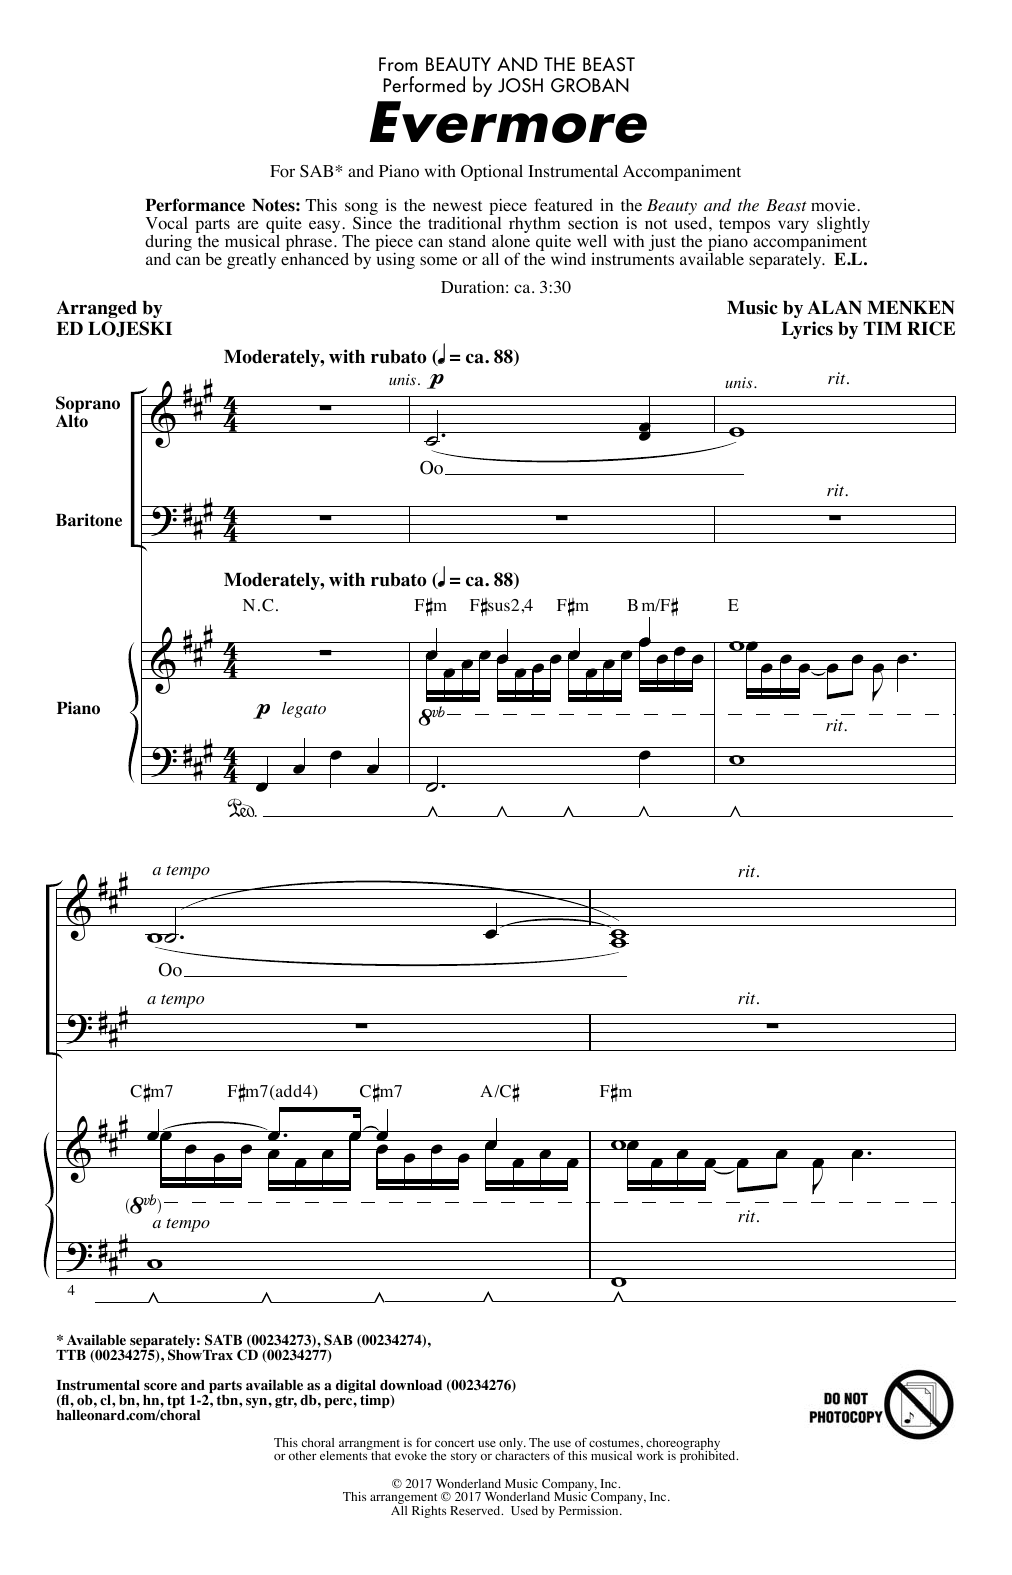 Evermore From Beauty And The Beast Arr Ed Lojeski By Josh Groban Sab Choir Digital Sheet Music